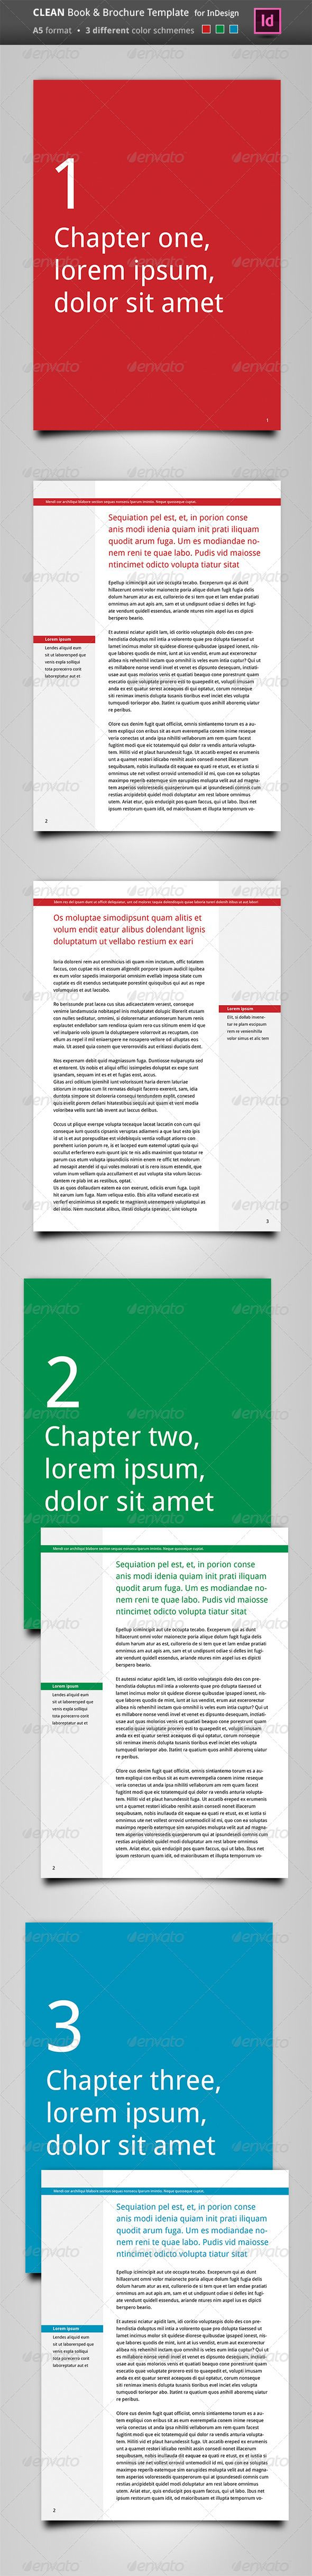 Color book in design - Clean Book Brochure Template